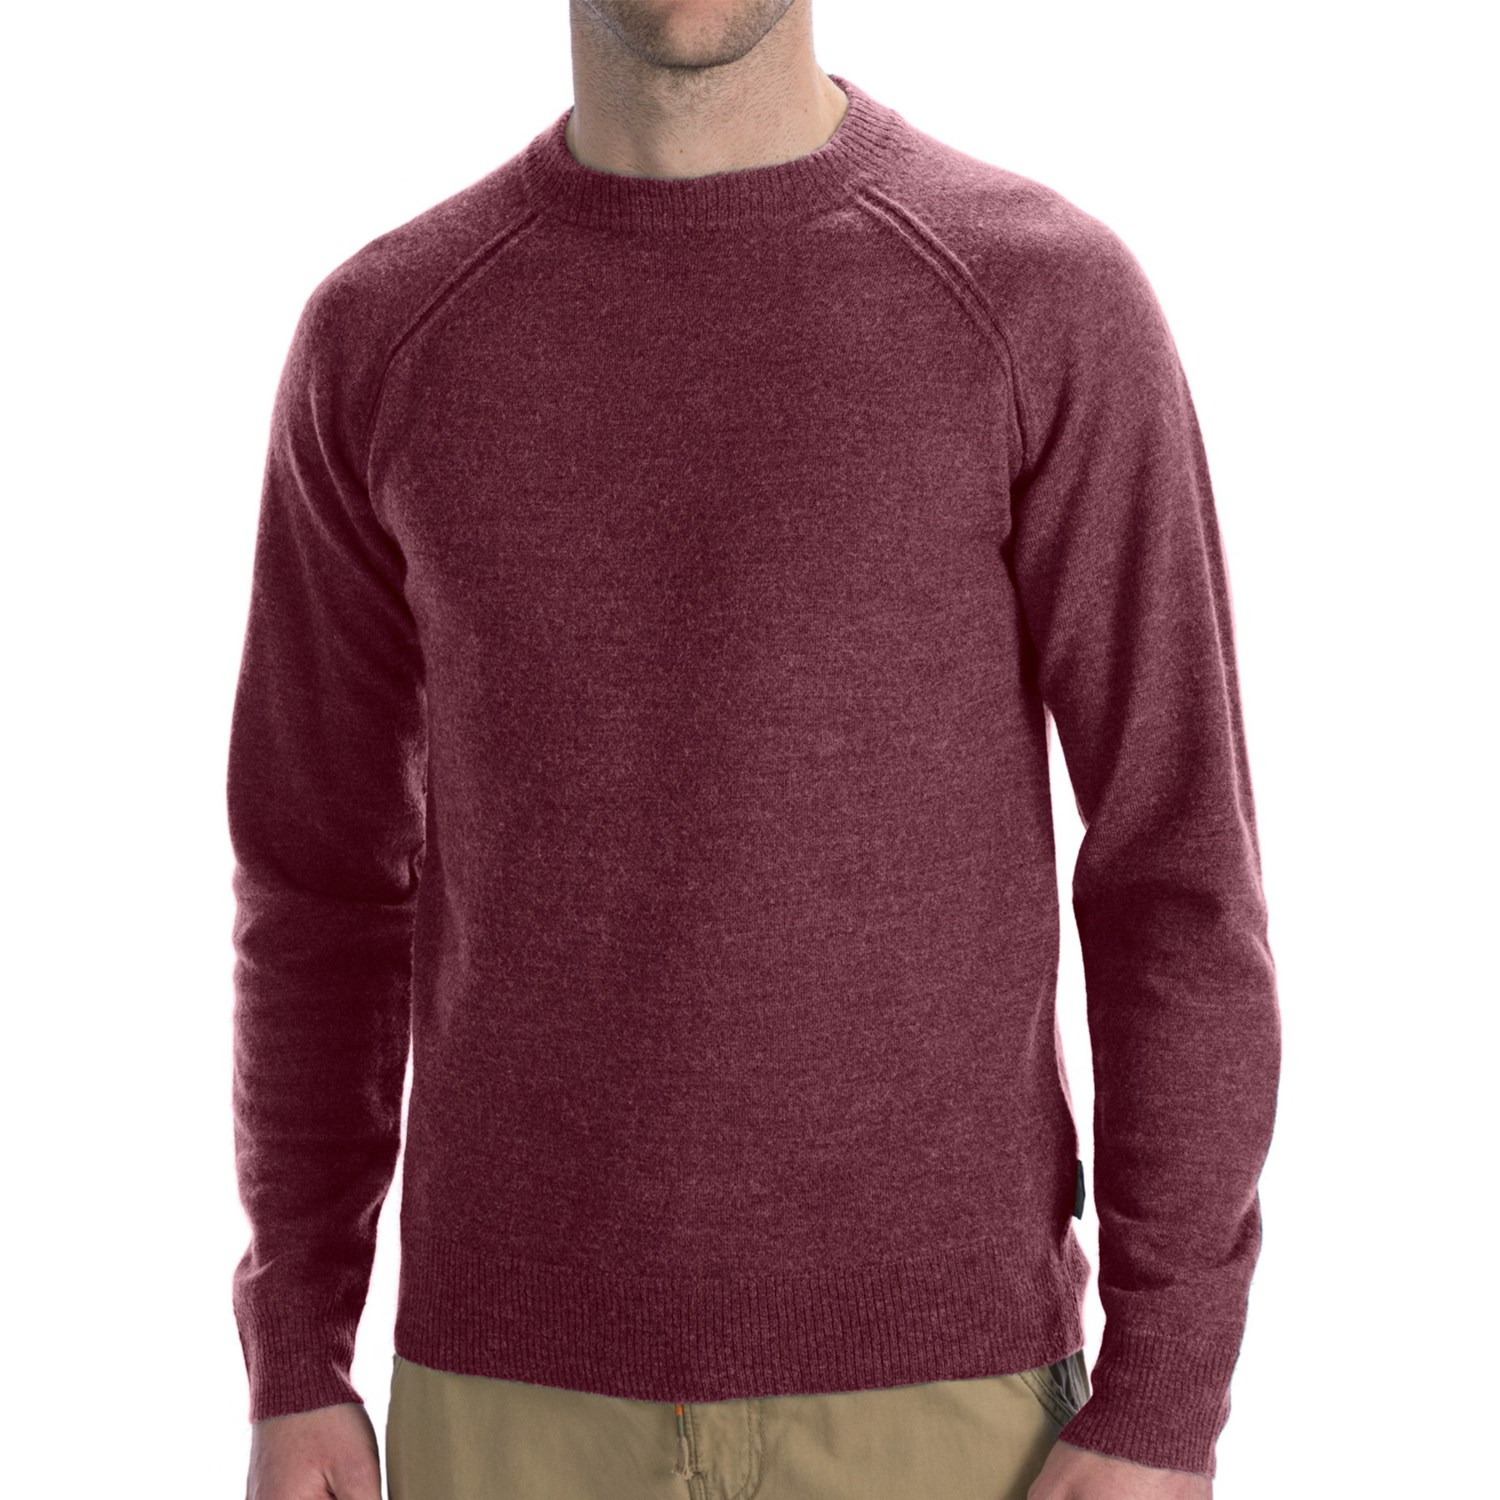 Men's Sweaters Cotton, wool, or cashmere—handsome layers that pair warmth and rugged looks with everyday versatility.